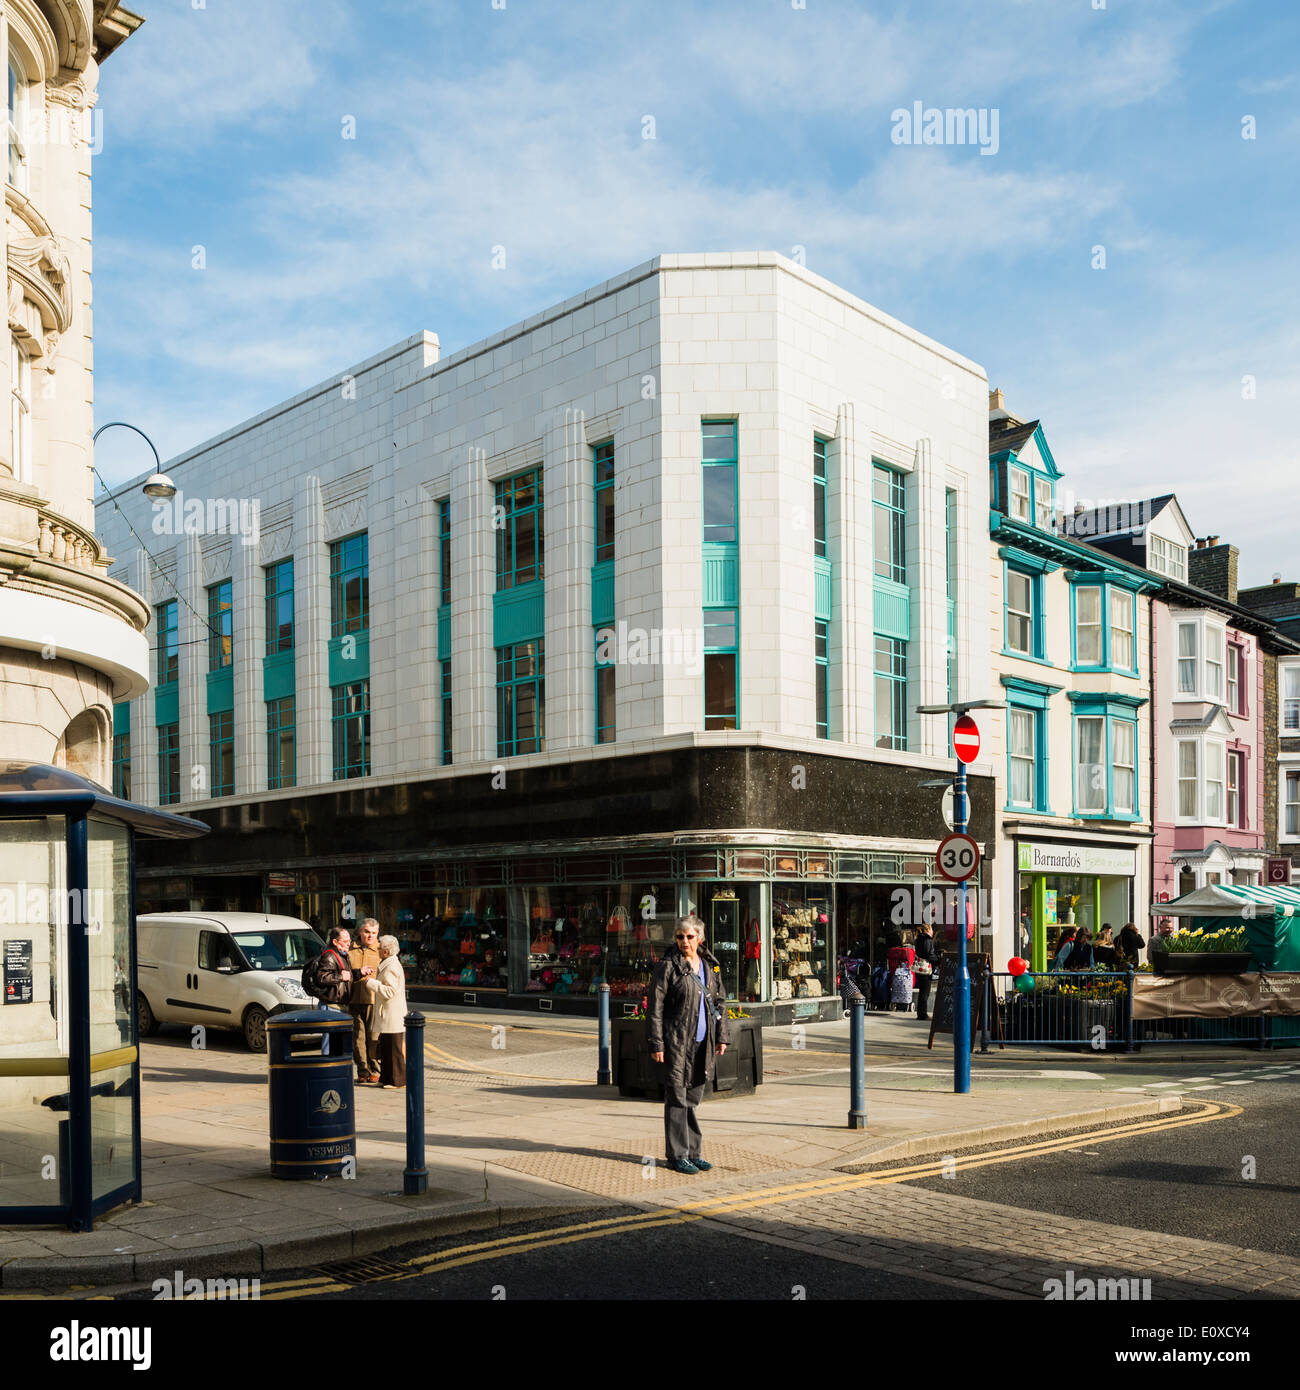 The newly renovated white marble clad Art Deco style former Burton's store in the centre of Aberystwyth Wales UK - Stock Image